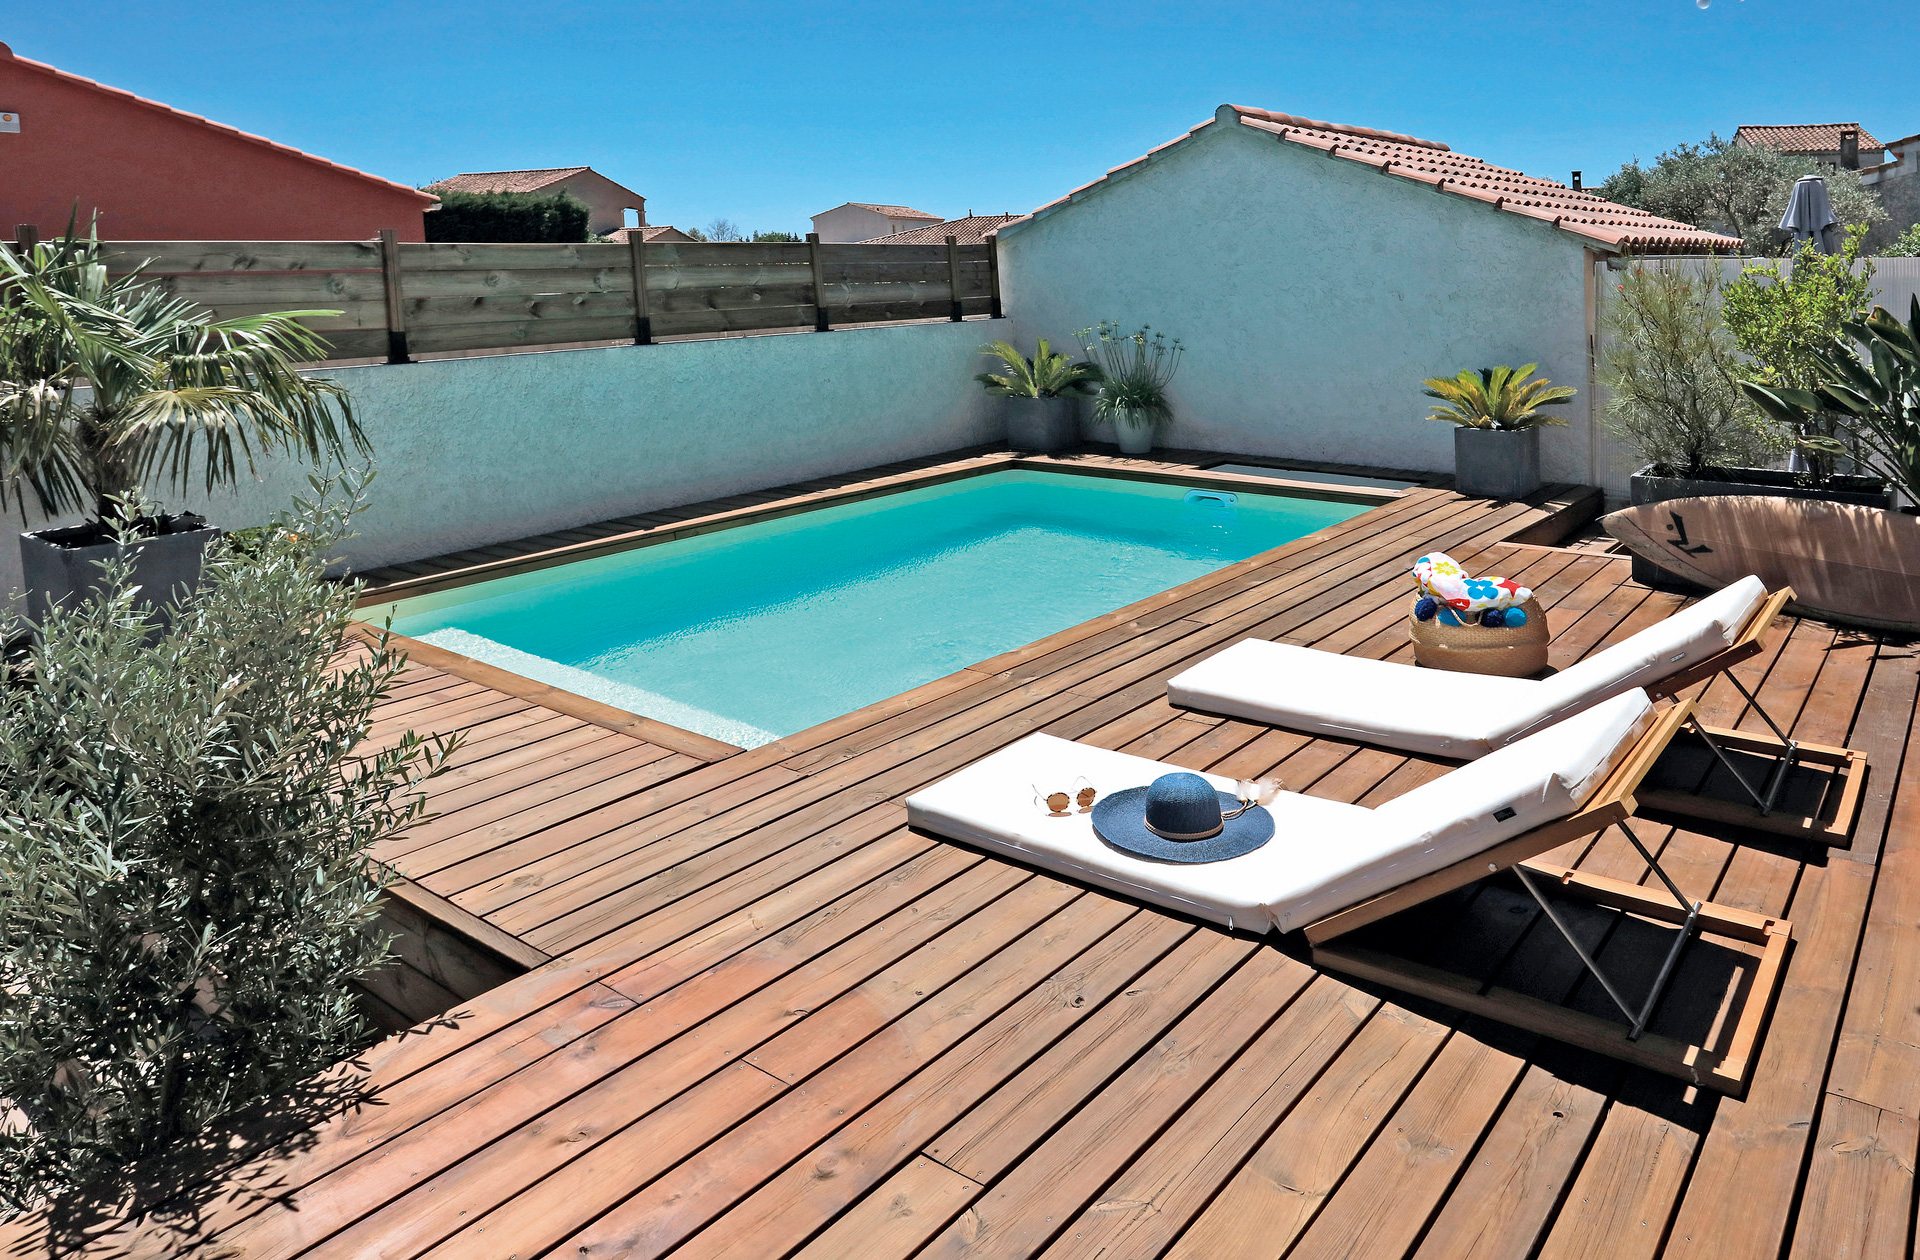 Pool Garten Mit Abdeckung Pool Bildgalerie Swimmingpool Referenzen Desjoyaux Pools